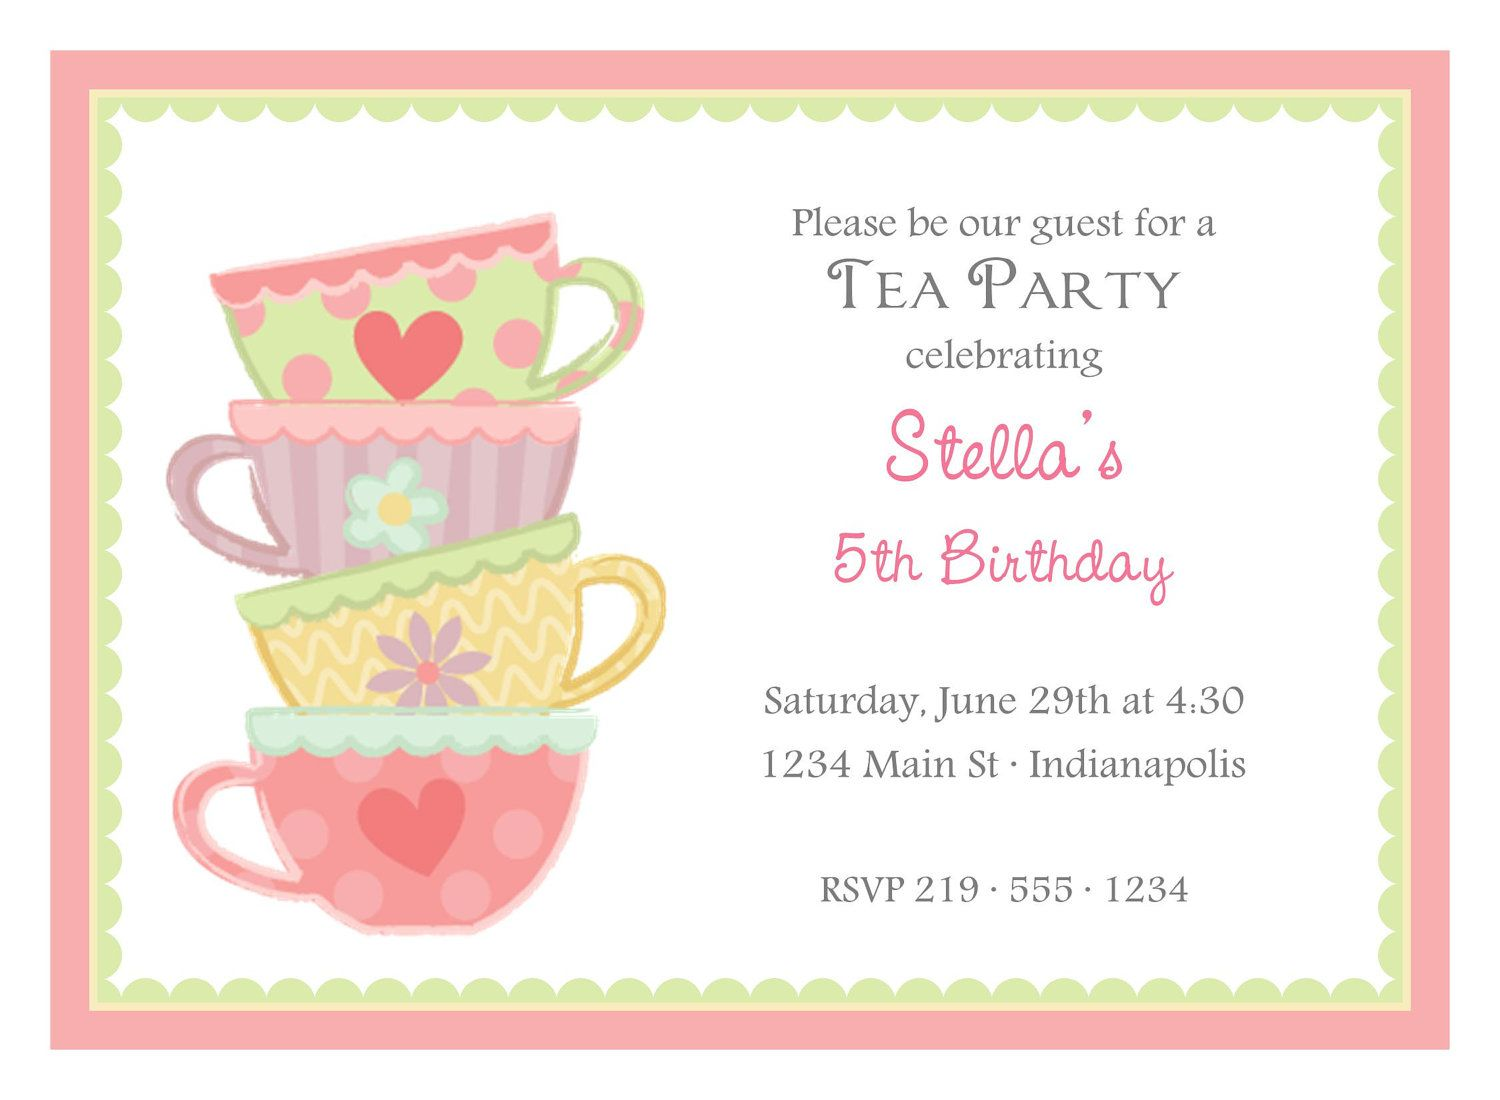 Tea Party Invitation Pertaminico - Bridal tea party invitation template